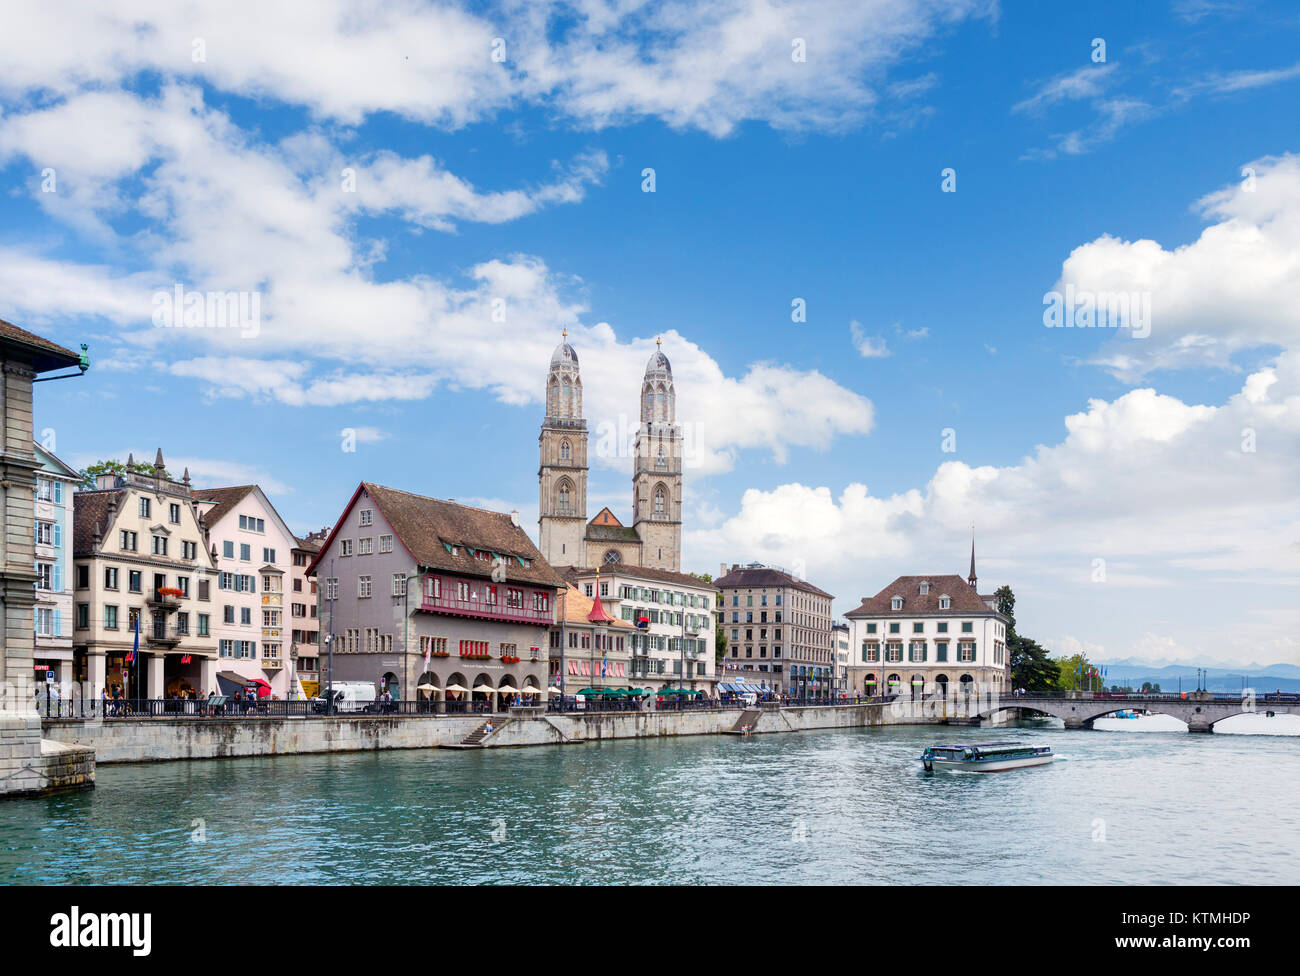 River Limmat looking towards the GrossmUnster, Zurich, Lake Zurich, Switzerland - Stock Image